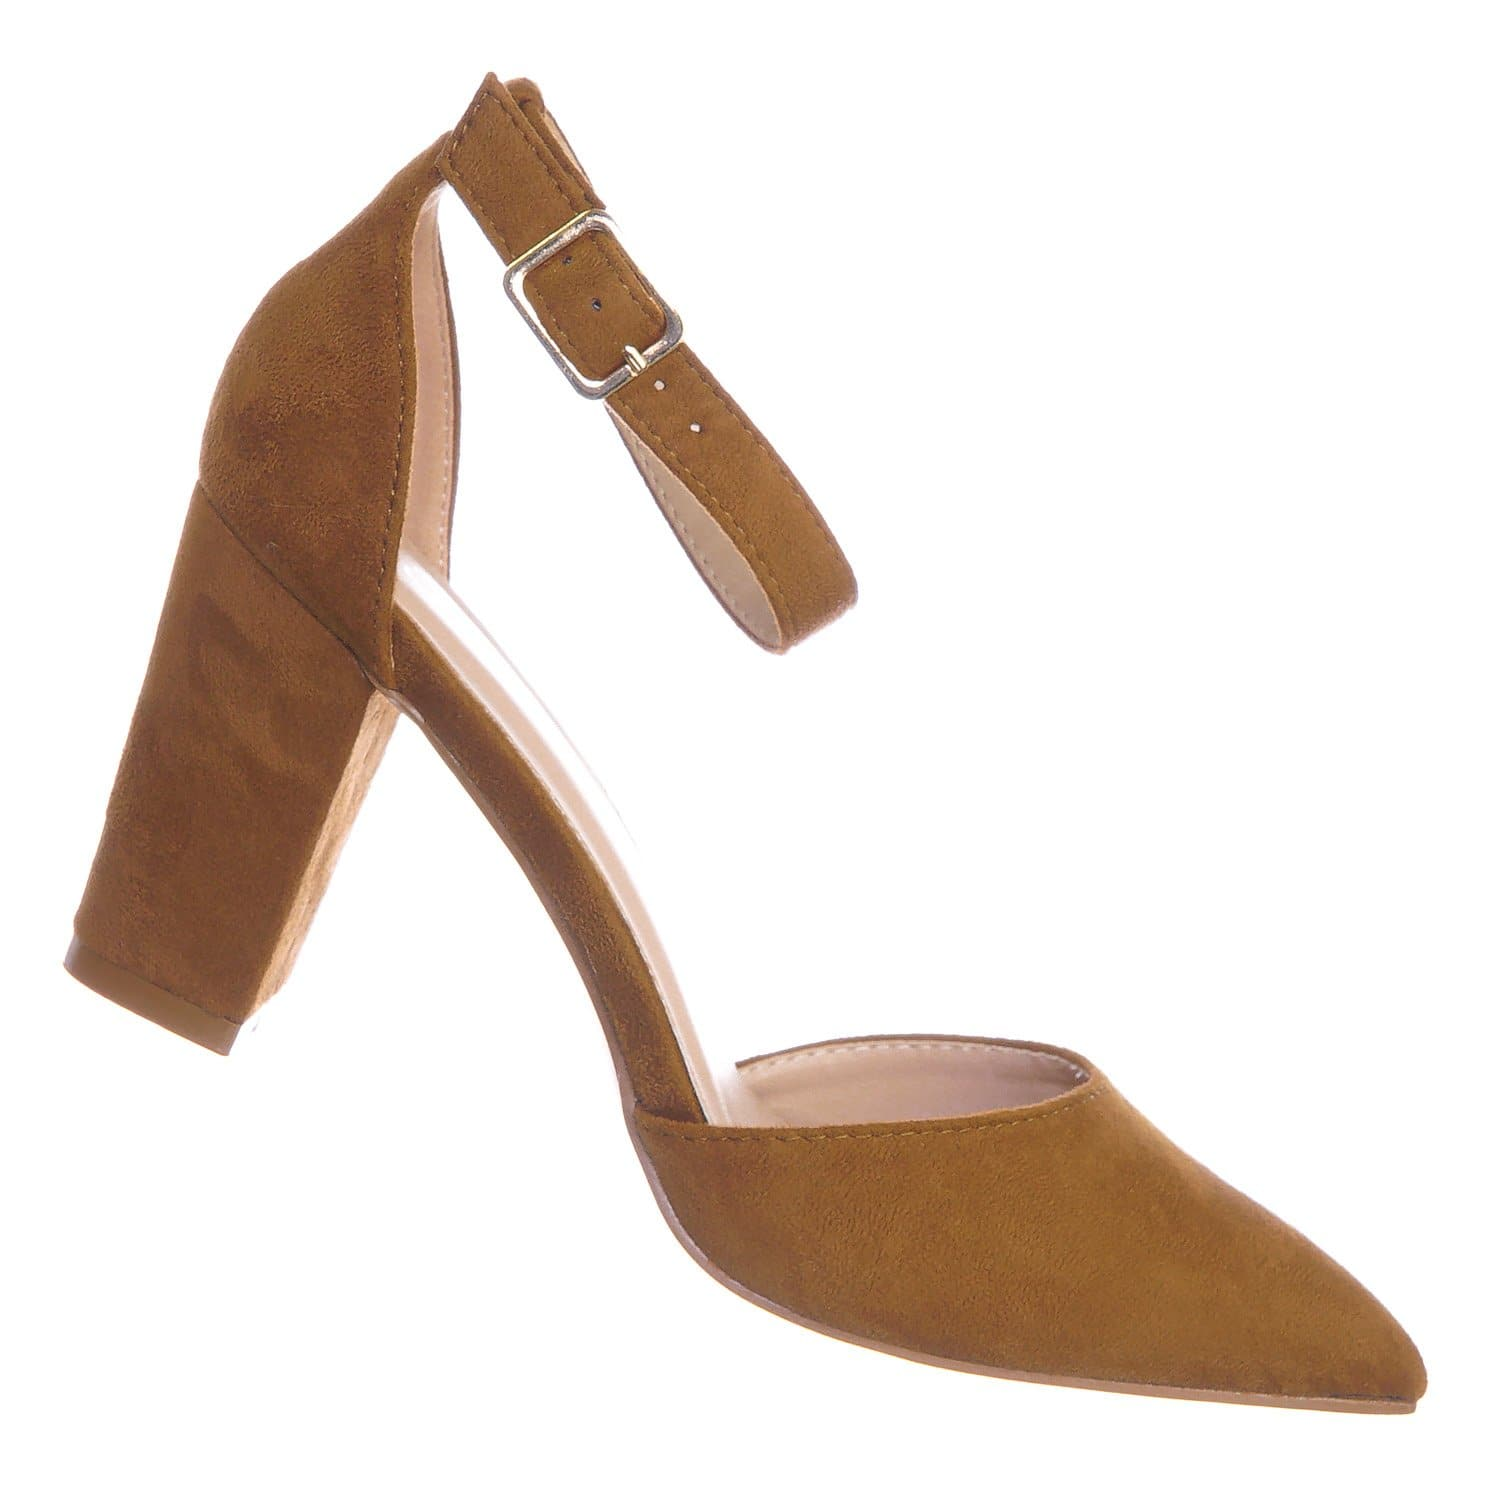 Songful6 Tan Retro Pointed Toe d'Orsay Chunky Block Heel Pump - Women Open Shank